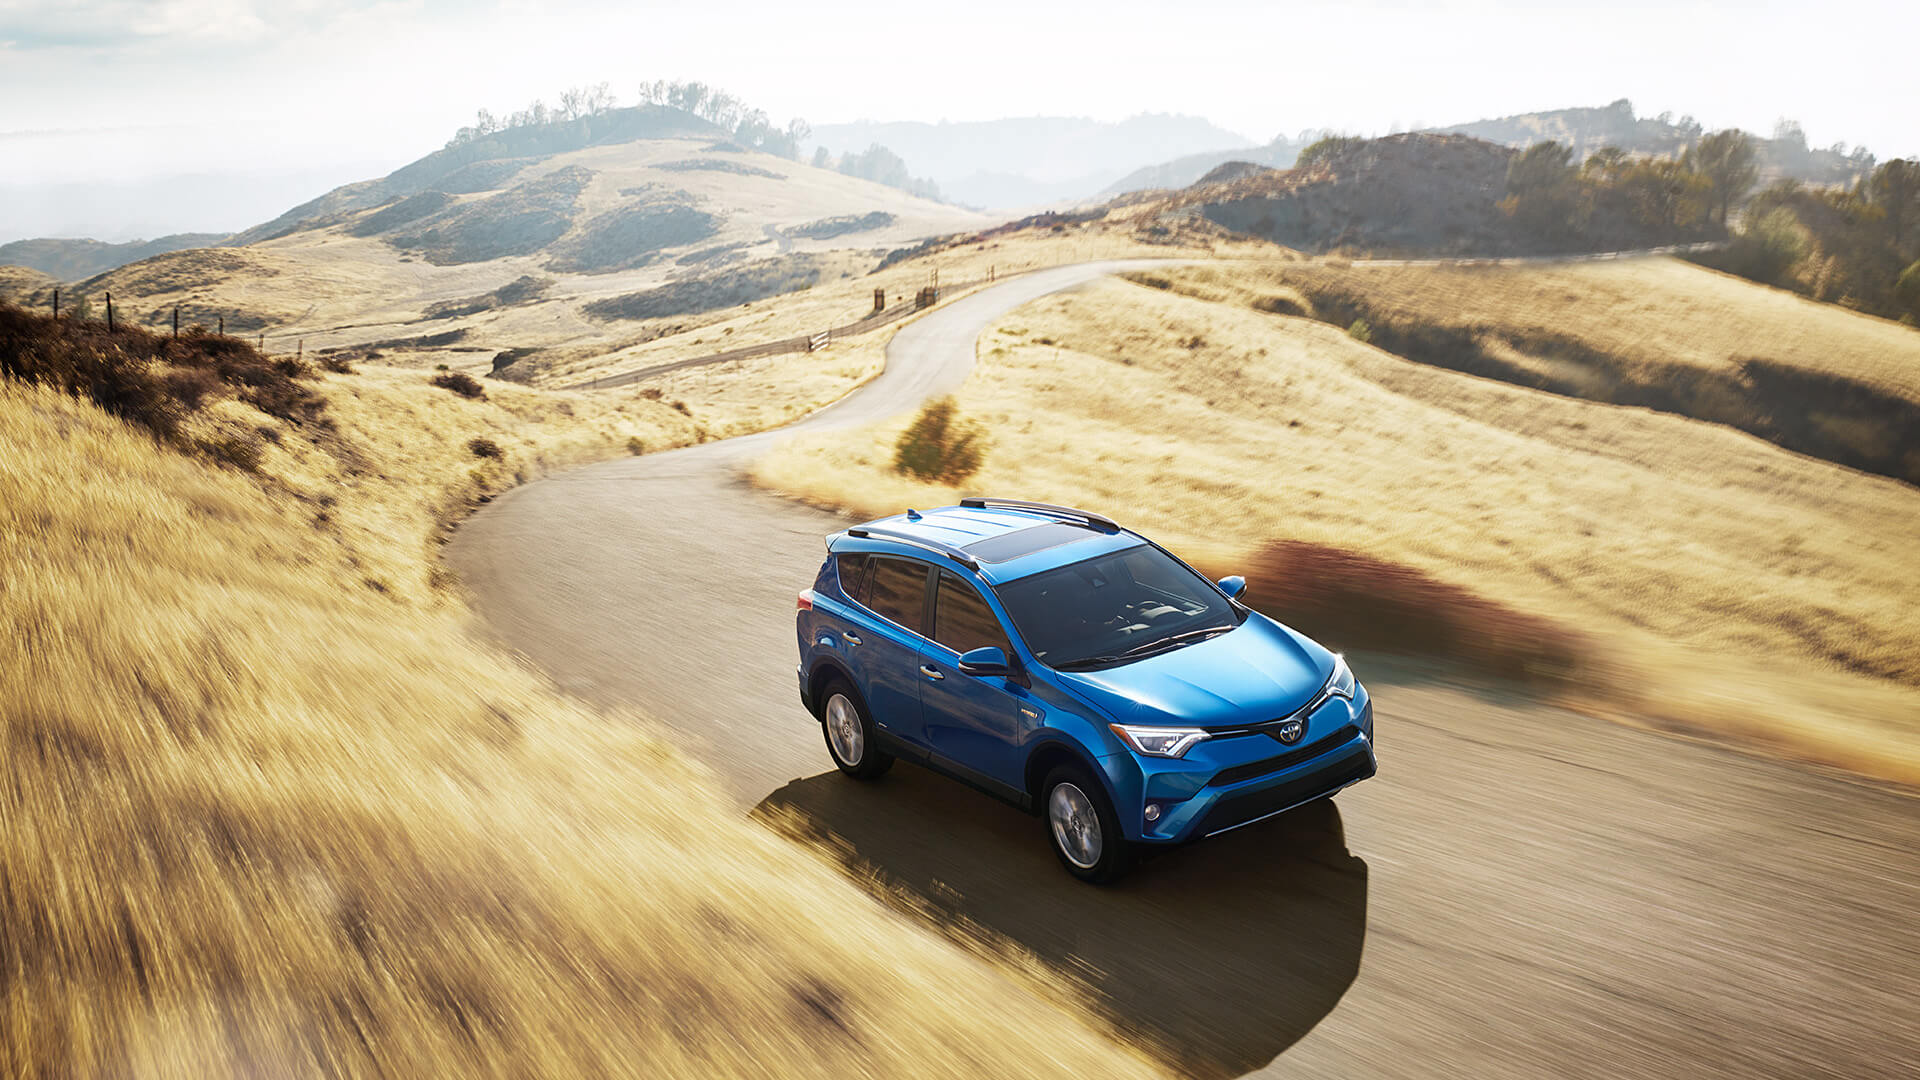 2016 Toyota RAV4 blue exterior model